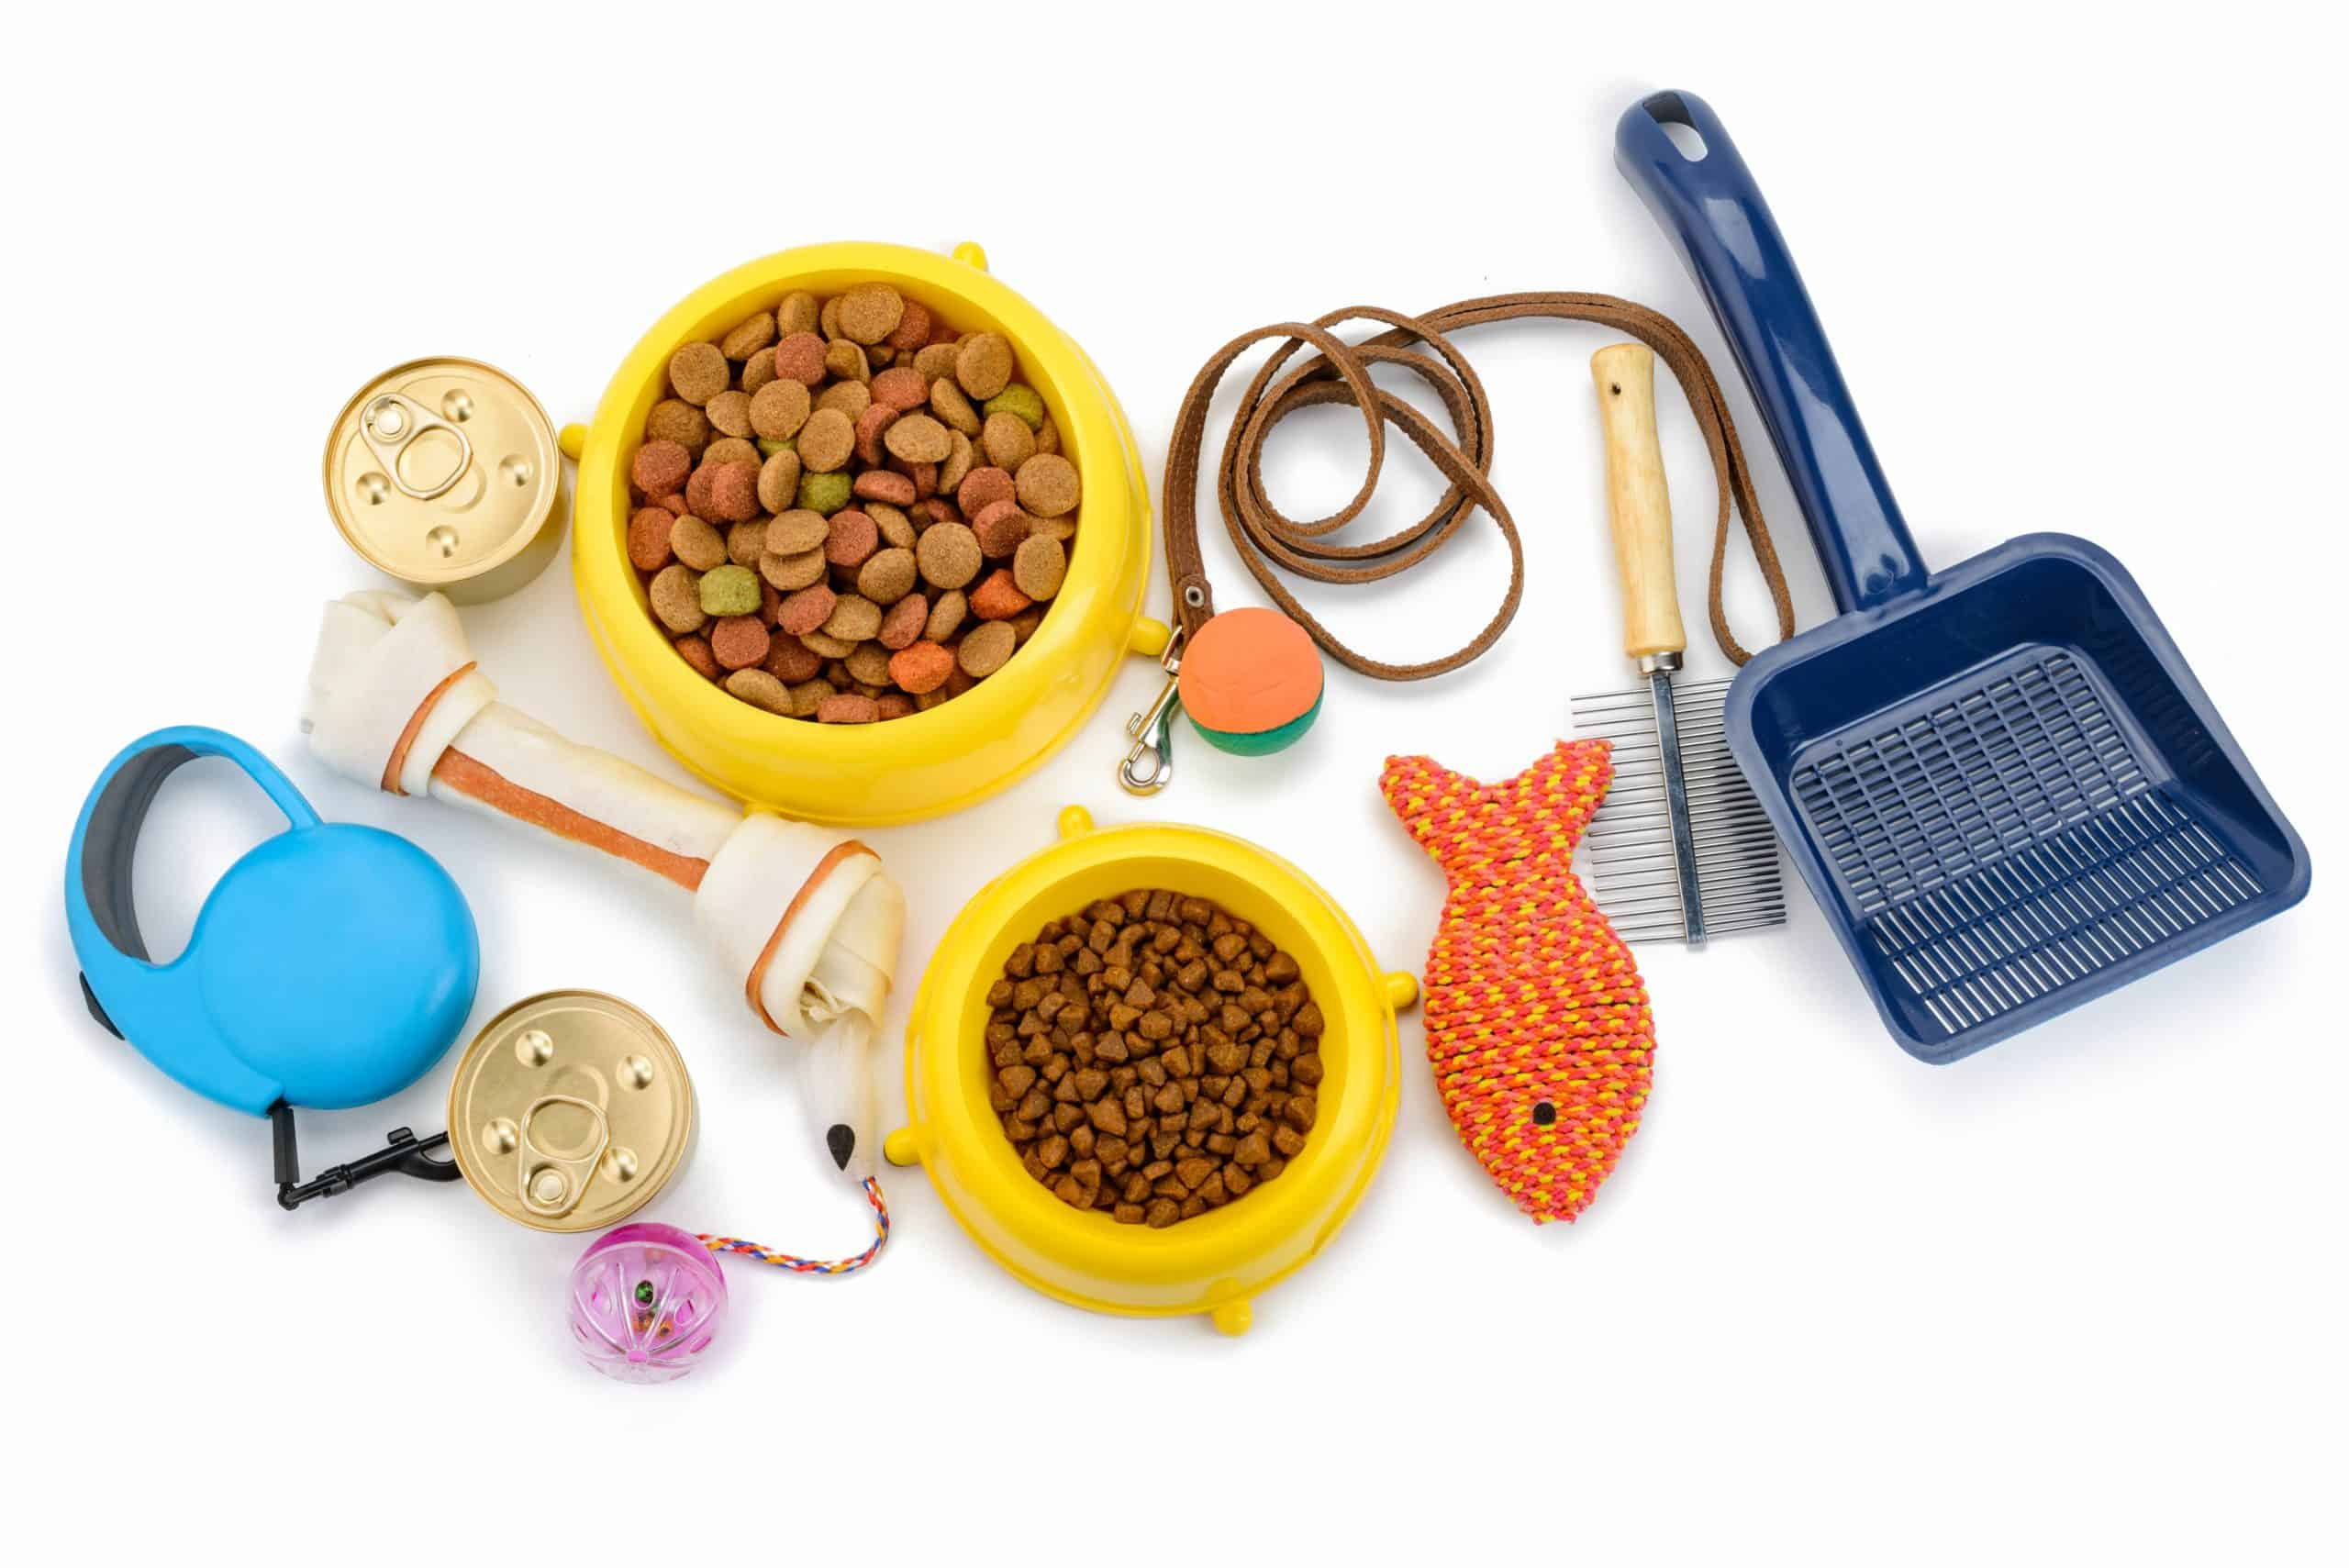 Pet supplies on a white background. Your pet's food, litter, toys, treats, medical care, and other supplies can really add up. Luckily, there are a few easy ways to save money on pet supplies so you can enjoy your animal companion for less.